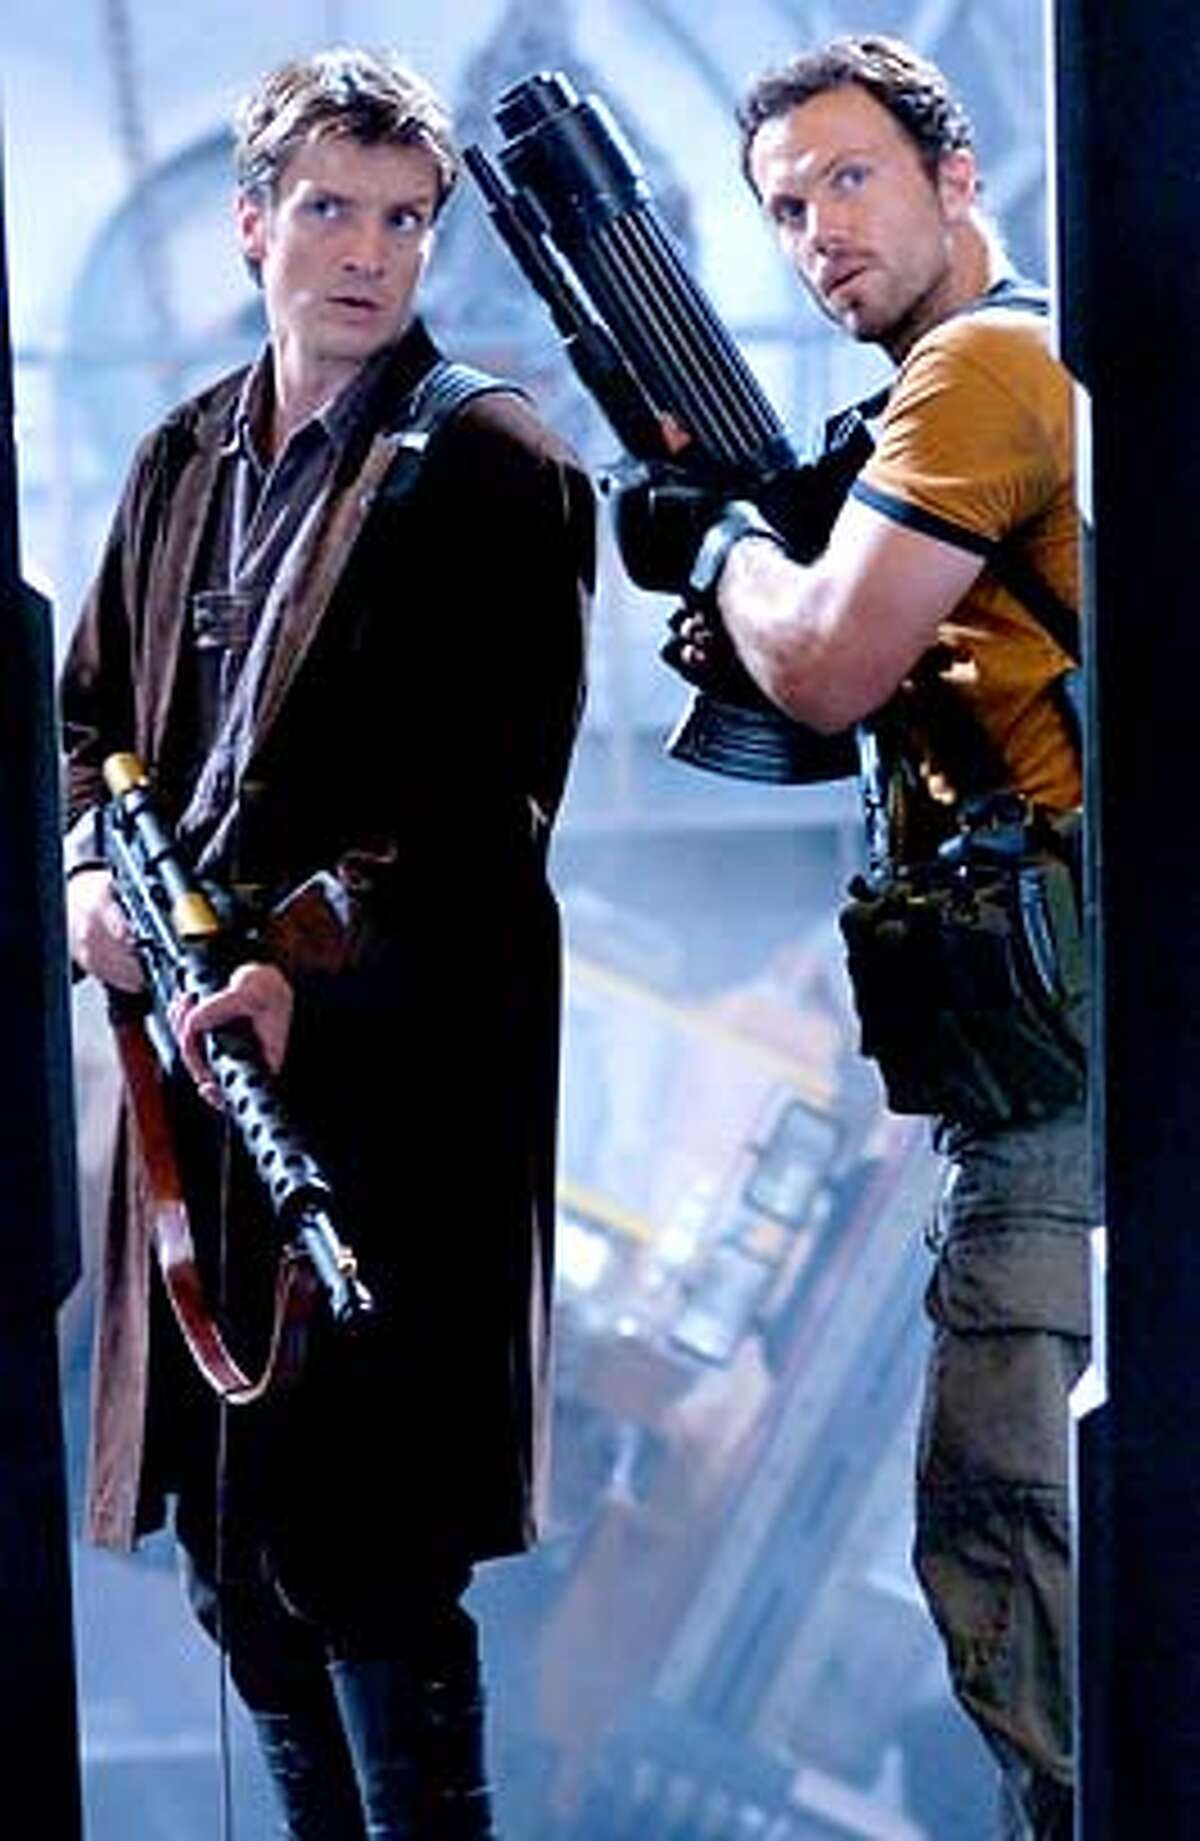 """Handout photo for the sci-fi movie """"Serenity."""" Left is Nathan Fillion as Captain Malcolm Reynolds, right is Adam Baldwin as Jayne (no first name given)."""